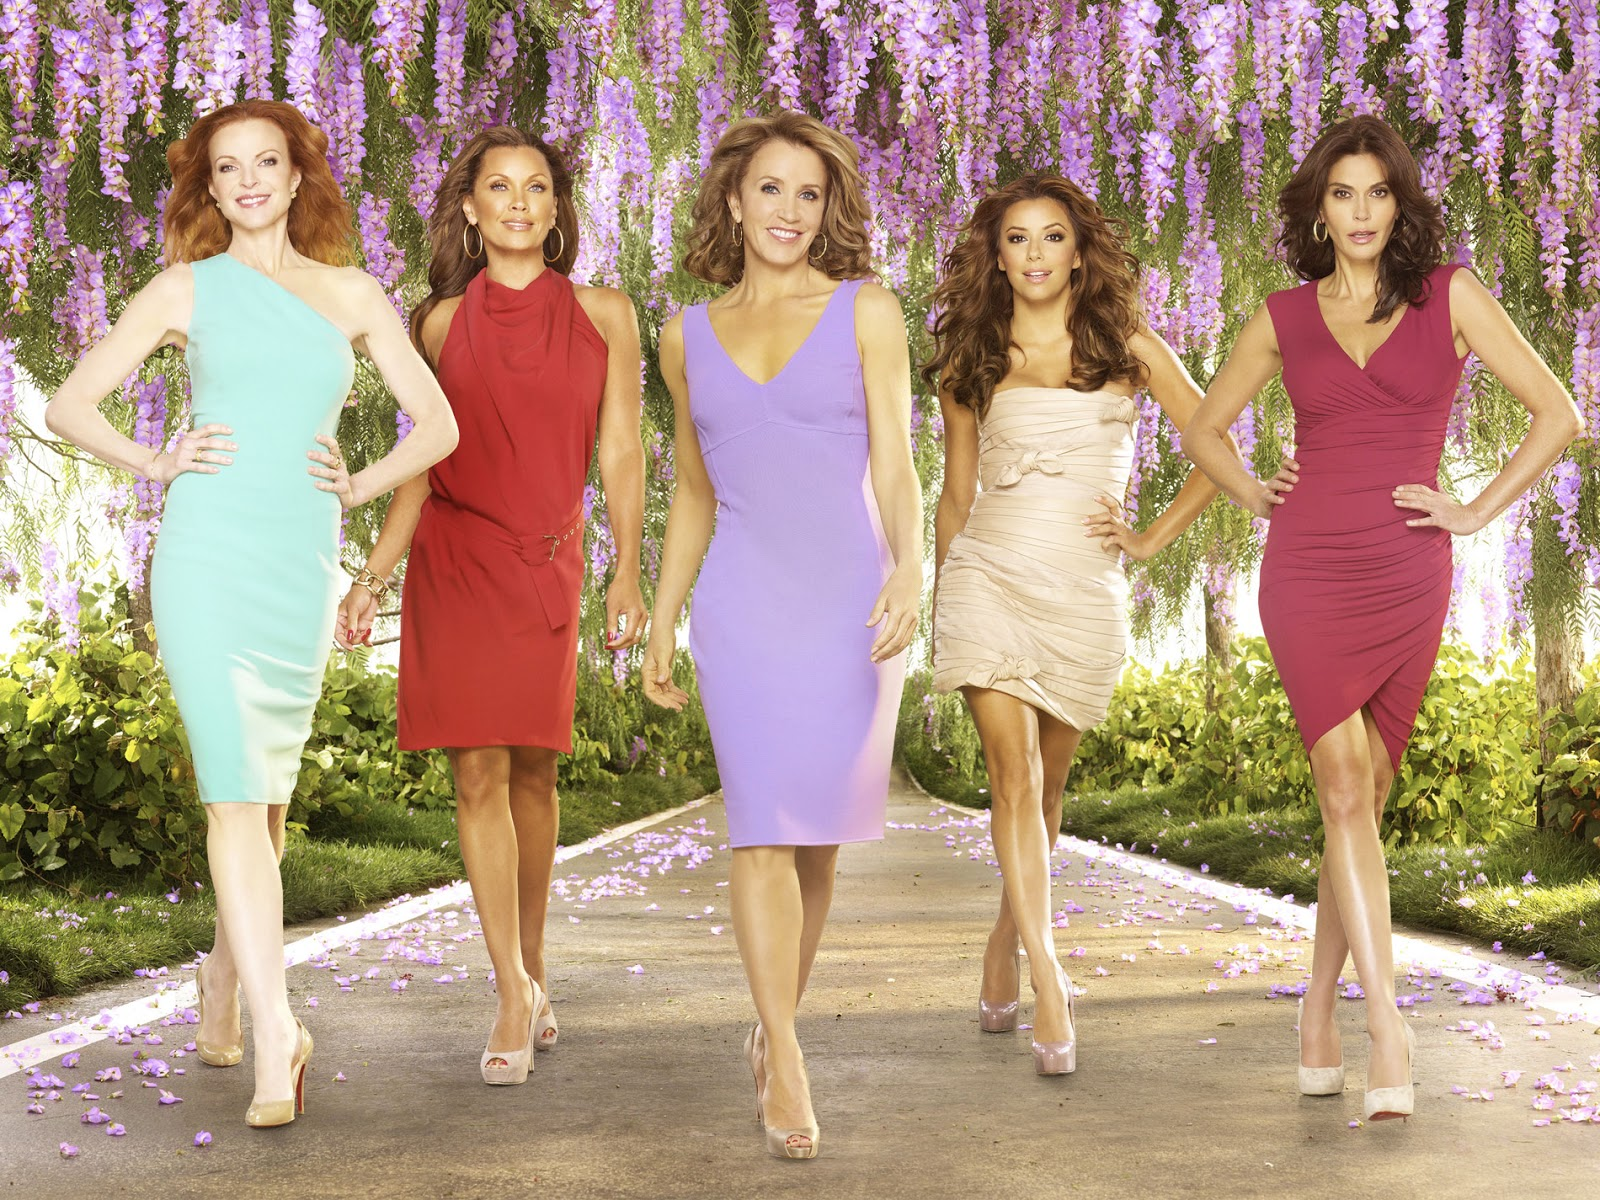 desperate housewives wallpapers - Desperate Housewives Wallpapers Desperate Housewives